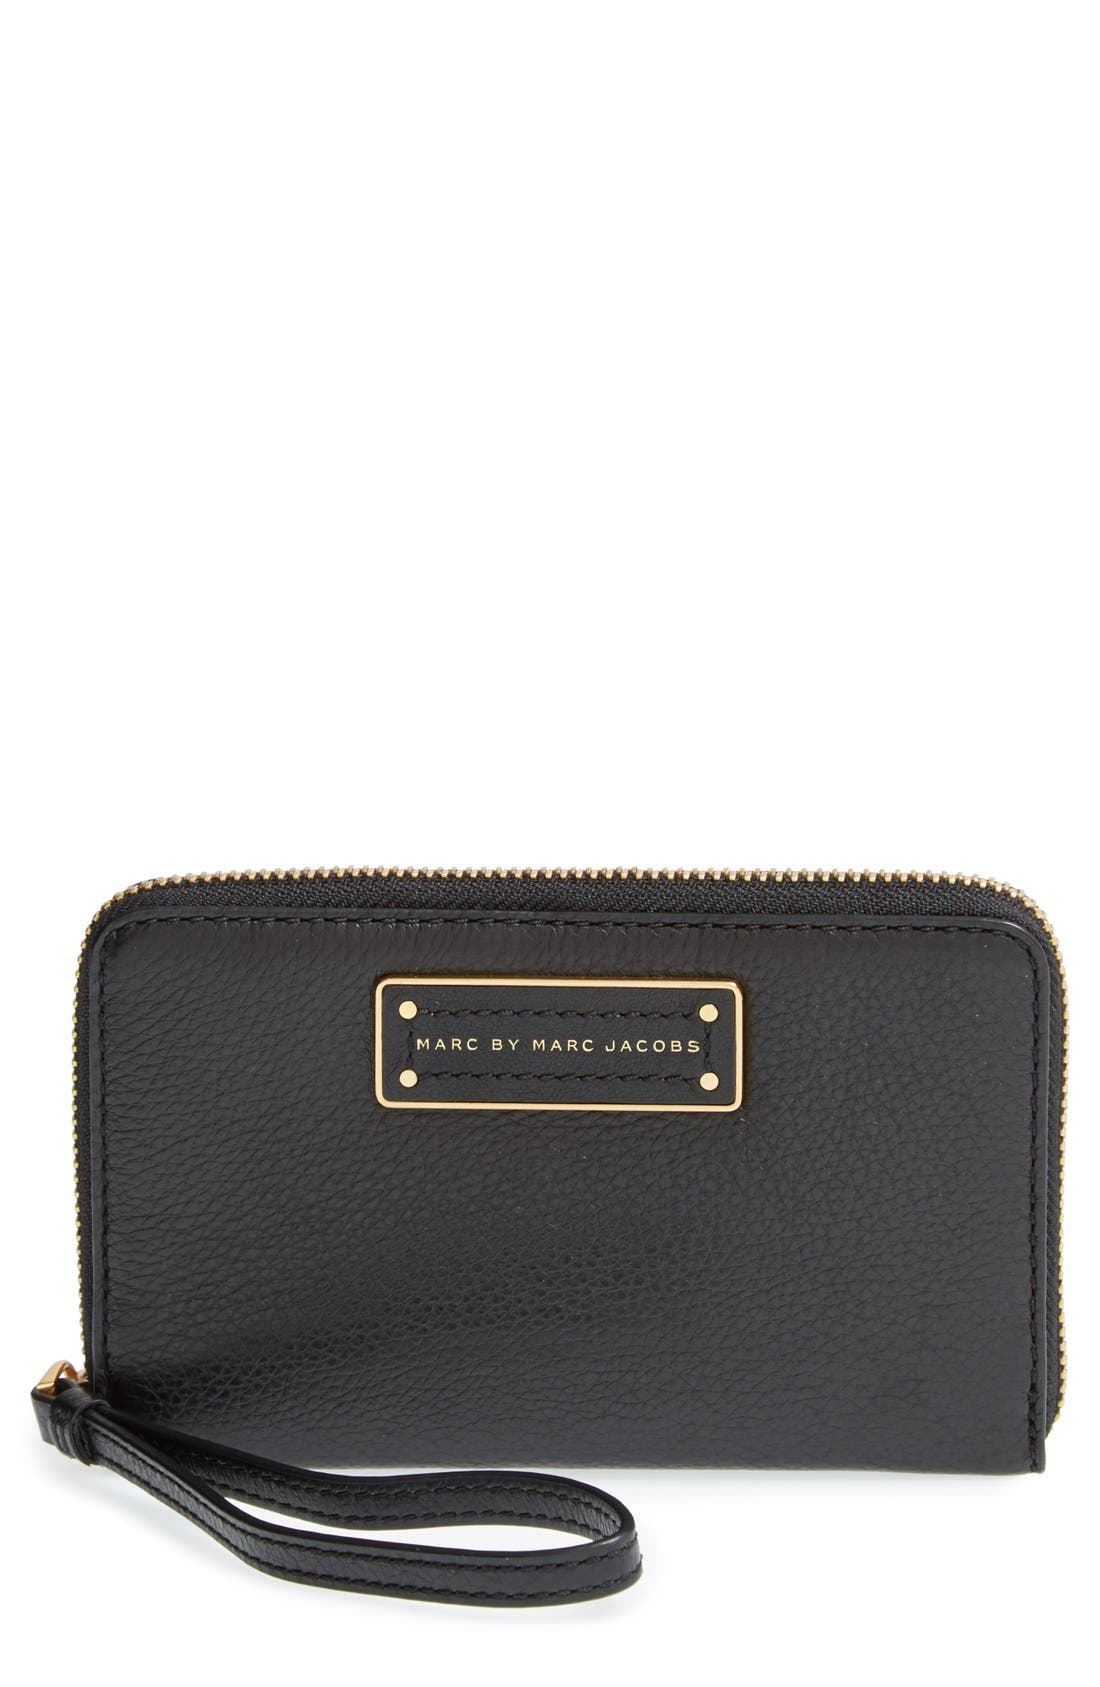 Alternate Image 1 Selected - MARC BY MARC JACOBS 'Too Hot To Handle - Wingman' Wallet Wristlet